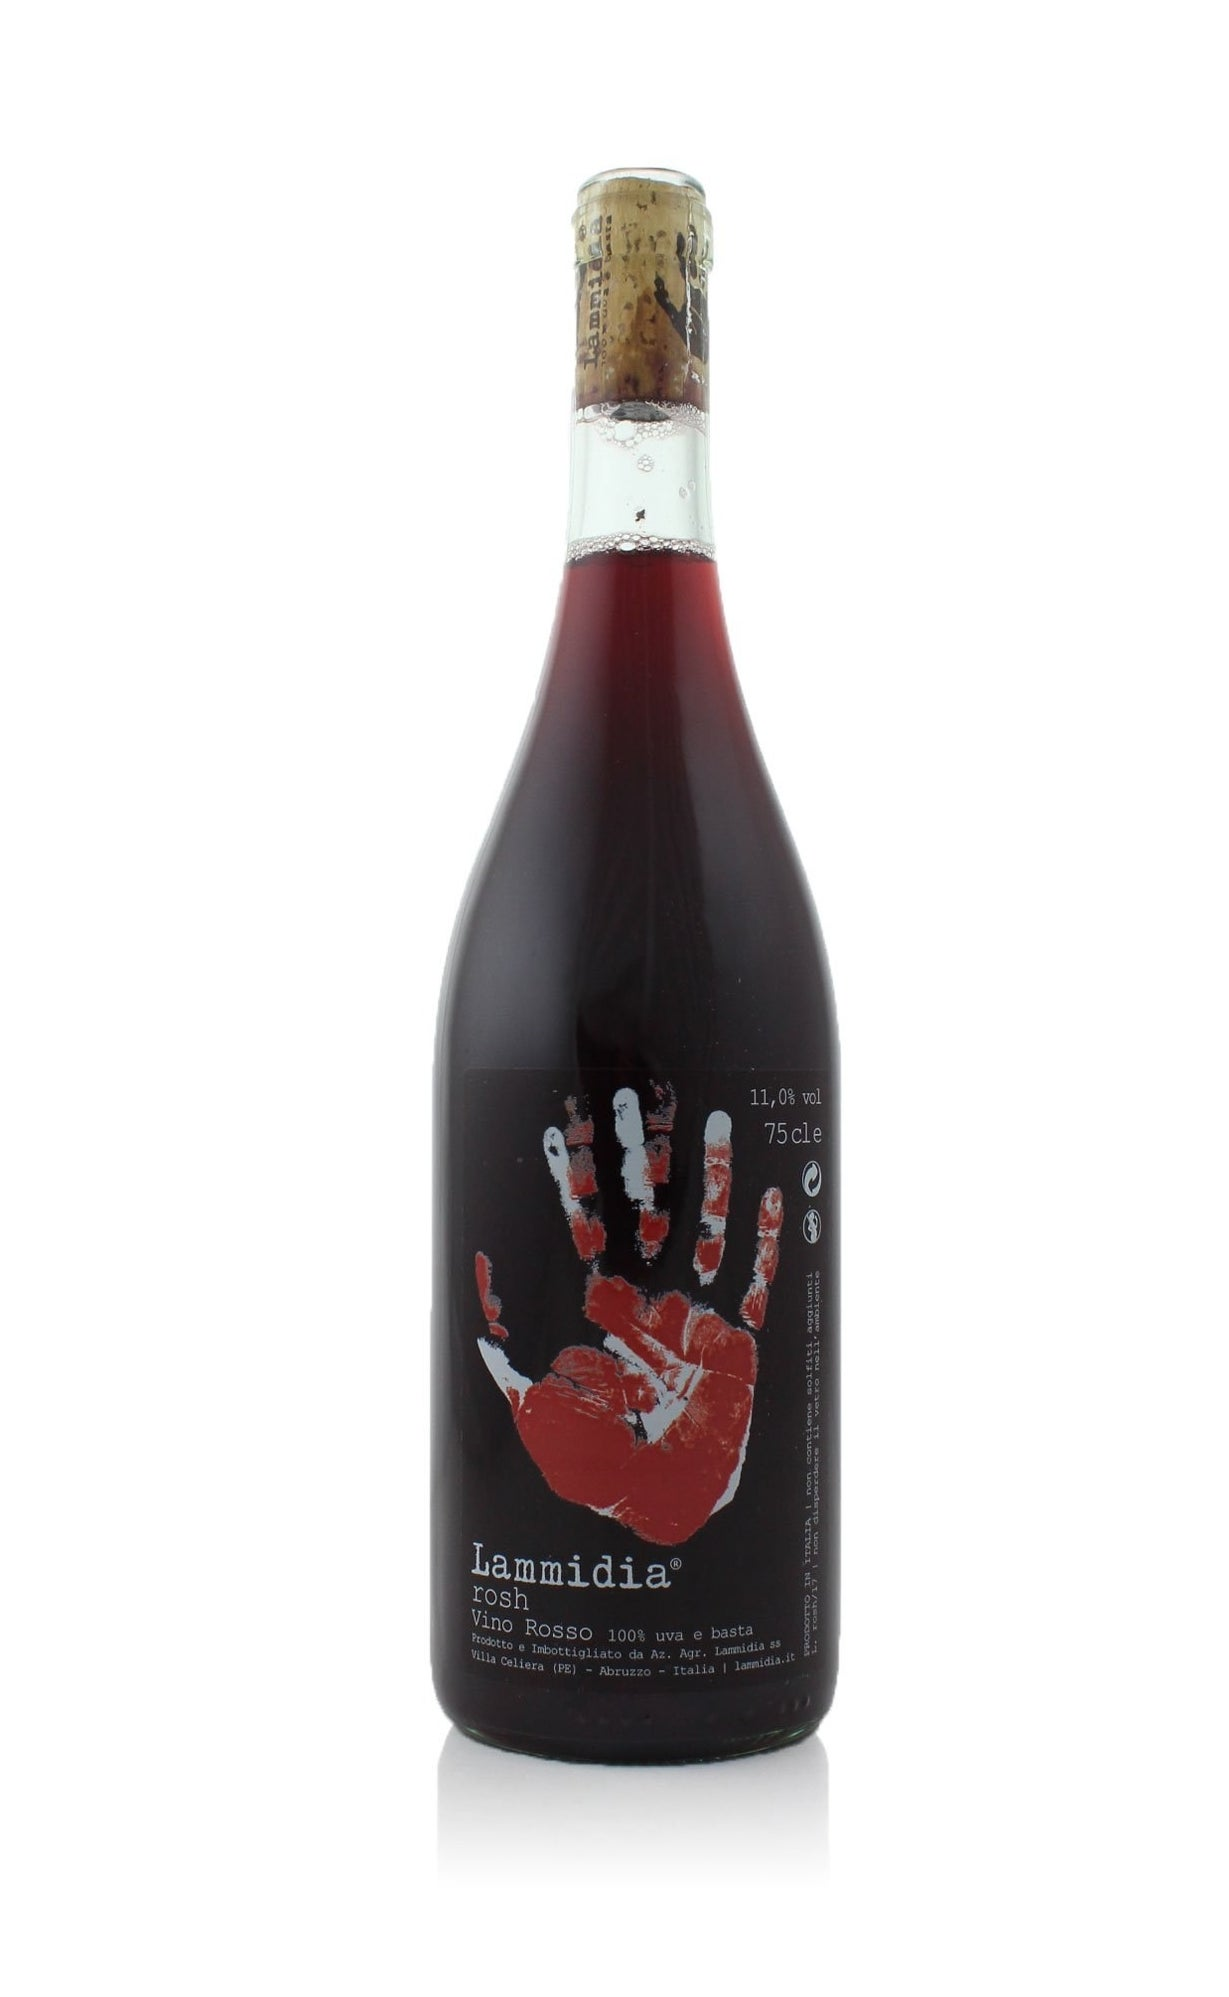 A bottle of red Lammidia Rosh Rosso wine.